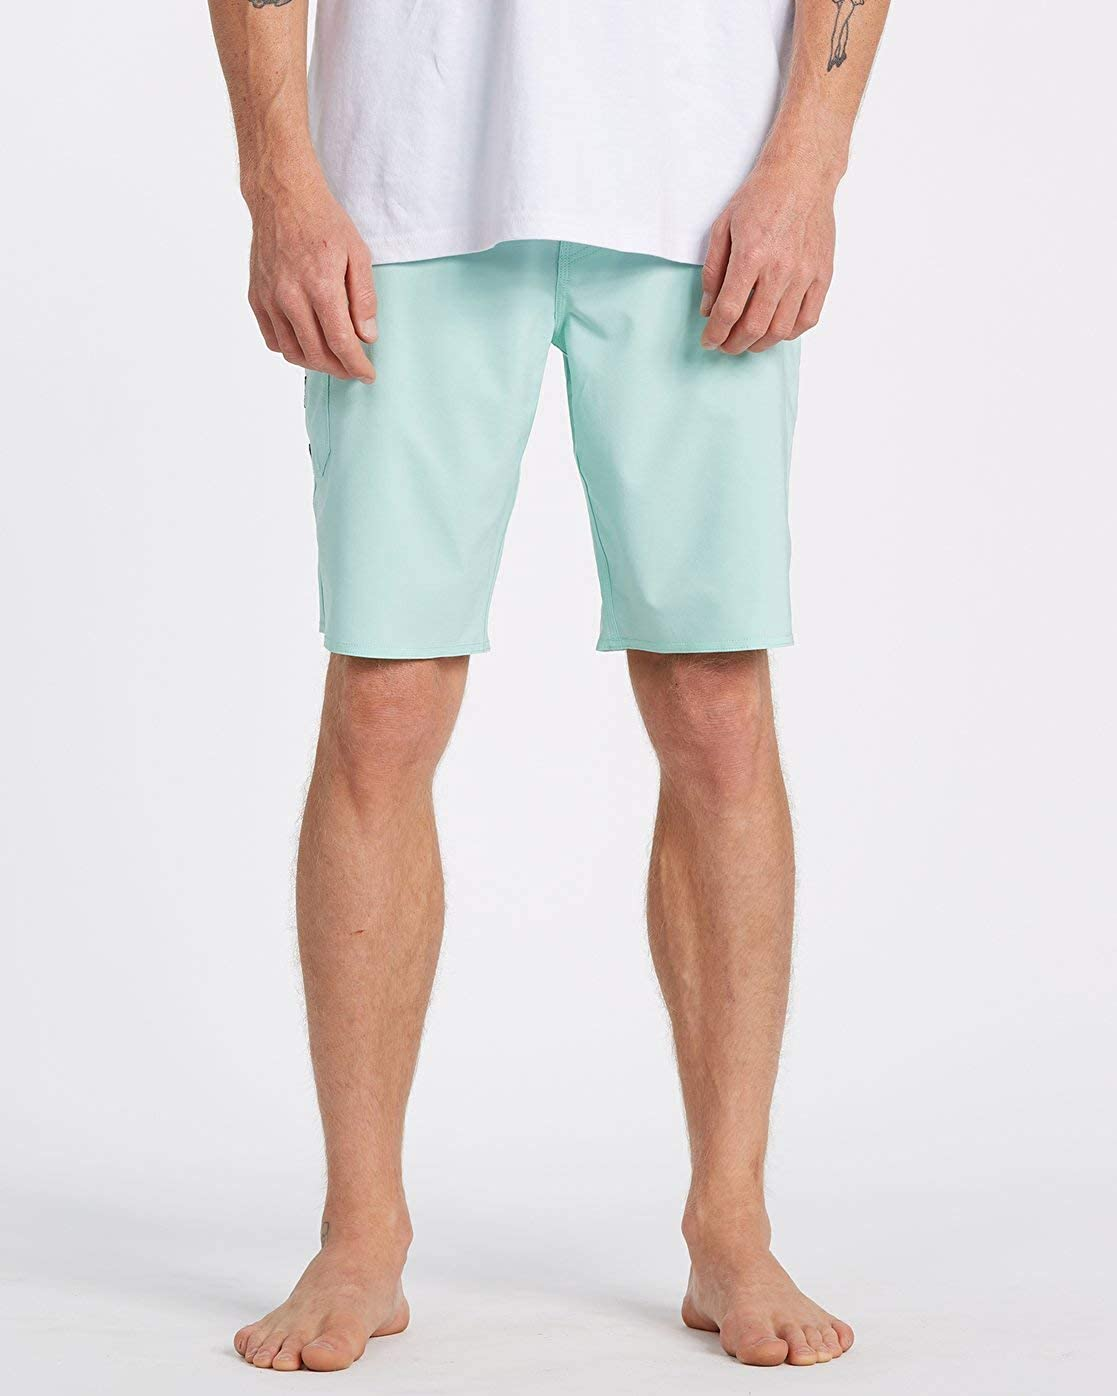 Billabong Mens All Day Pro Boardshorts Board Sailing Boating Watersports Shorts - Aqua Heather - Easy Stretch Quick Dry